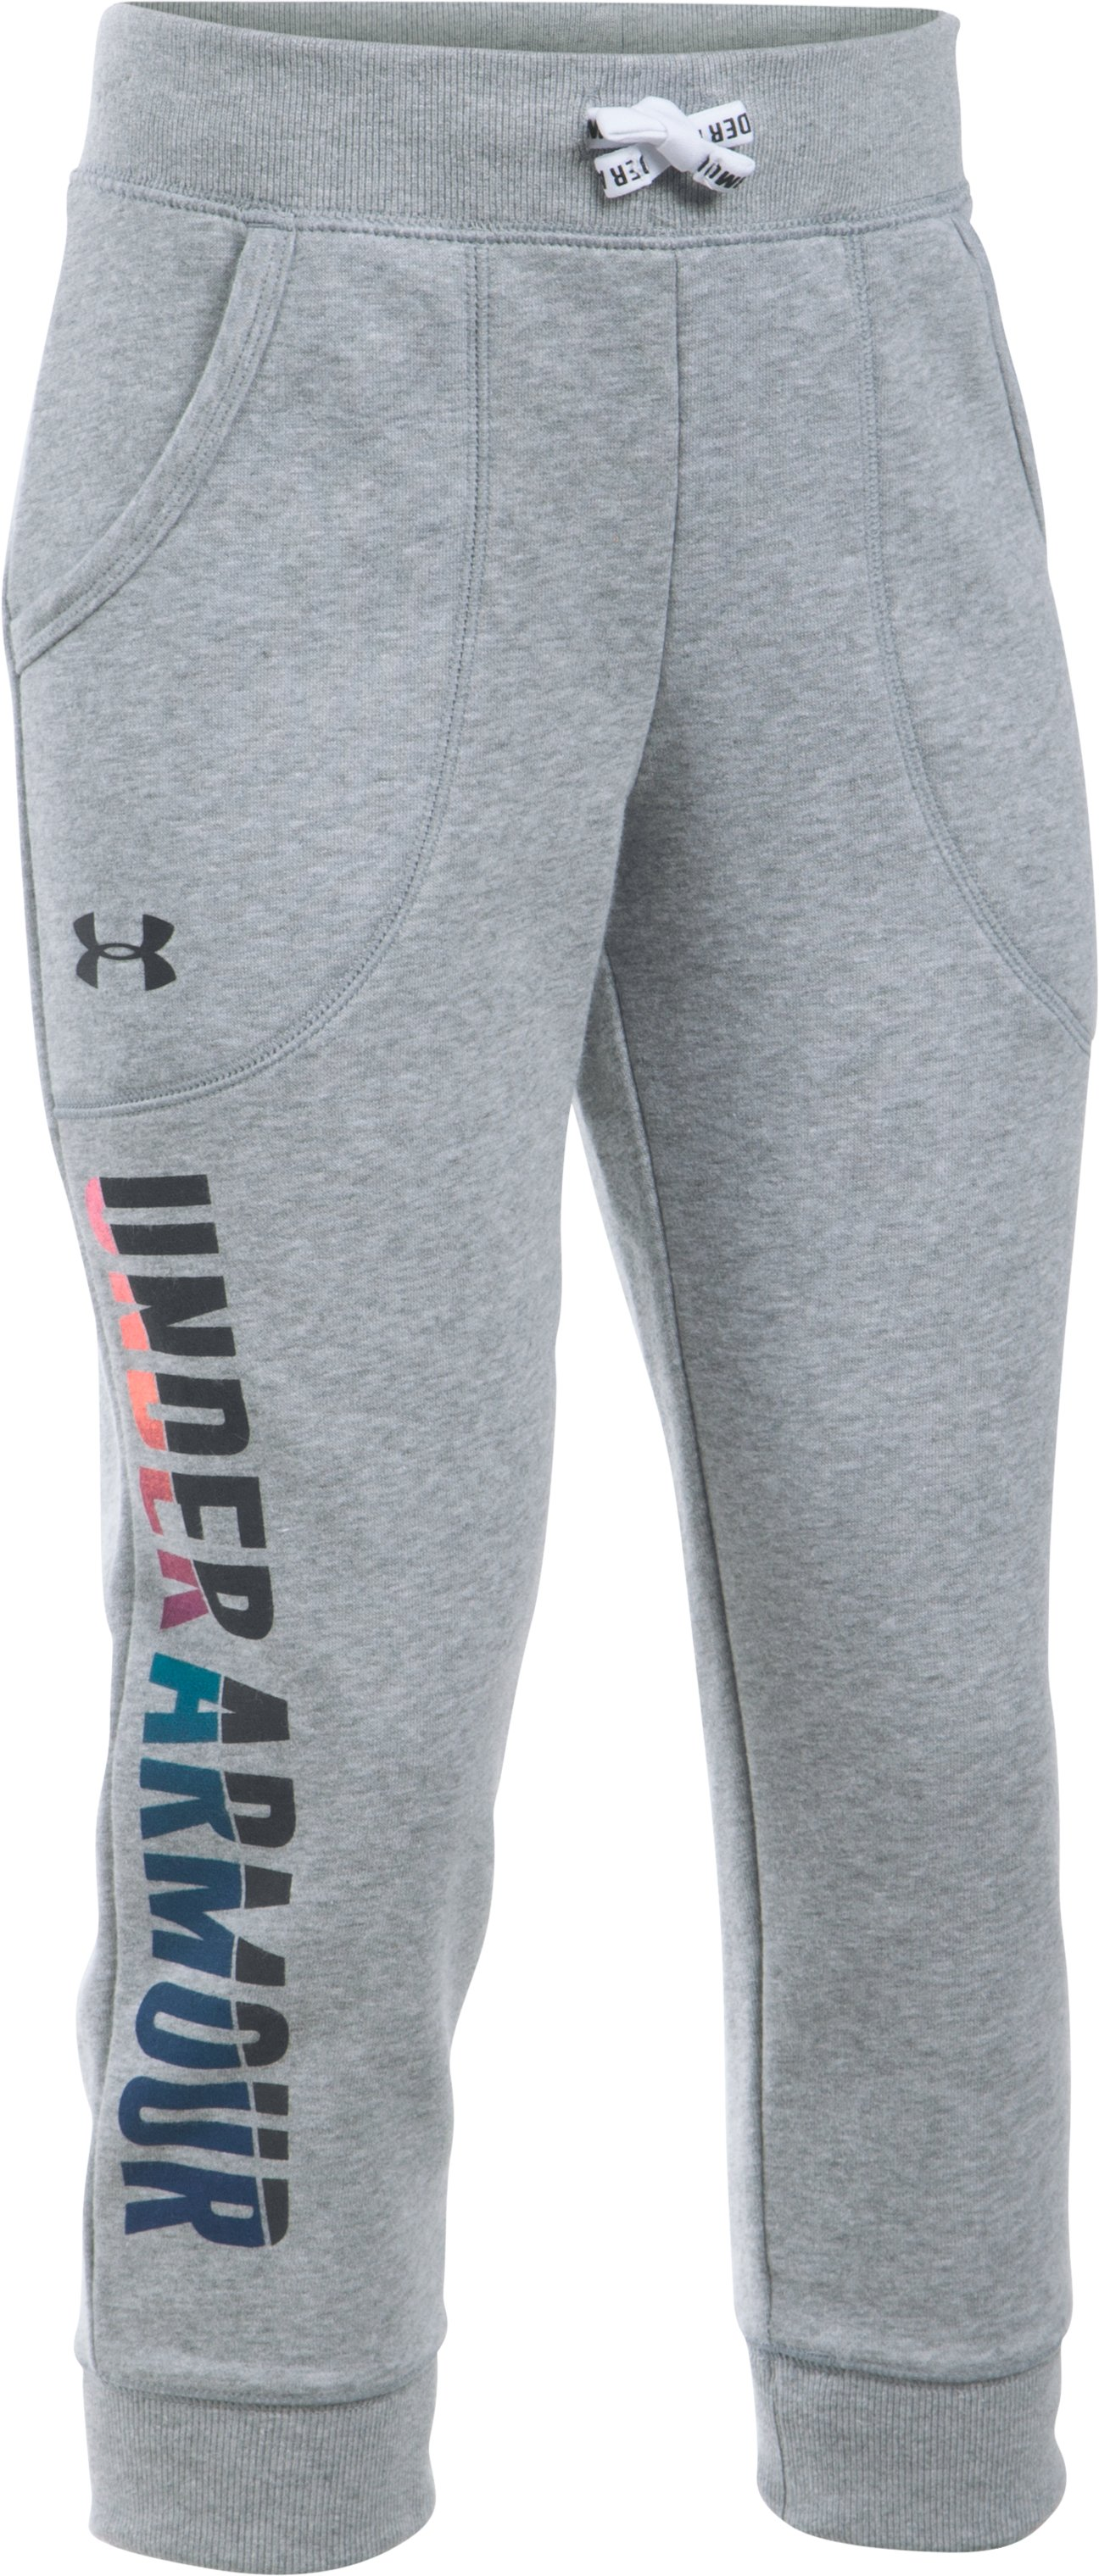 Girls' UA Favorite Fleece Capri, True Gray Heather, zoomed image